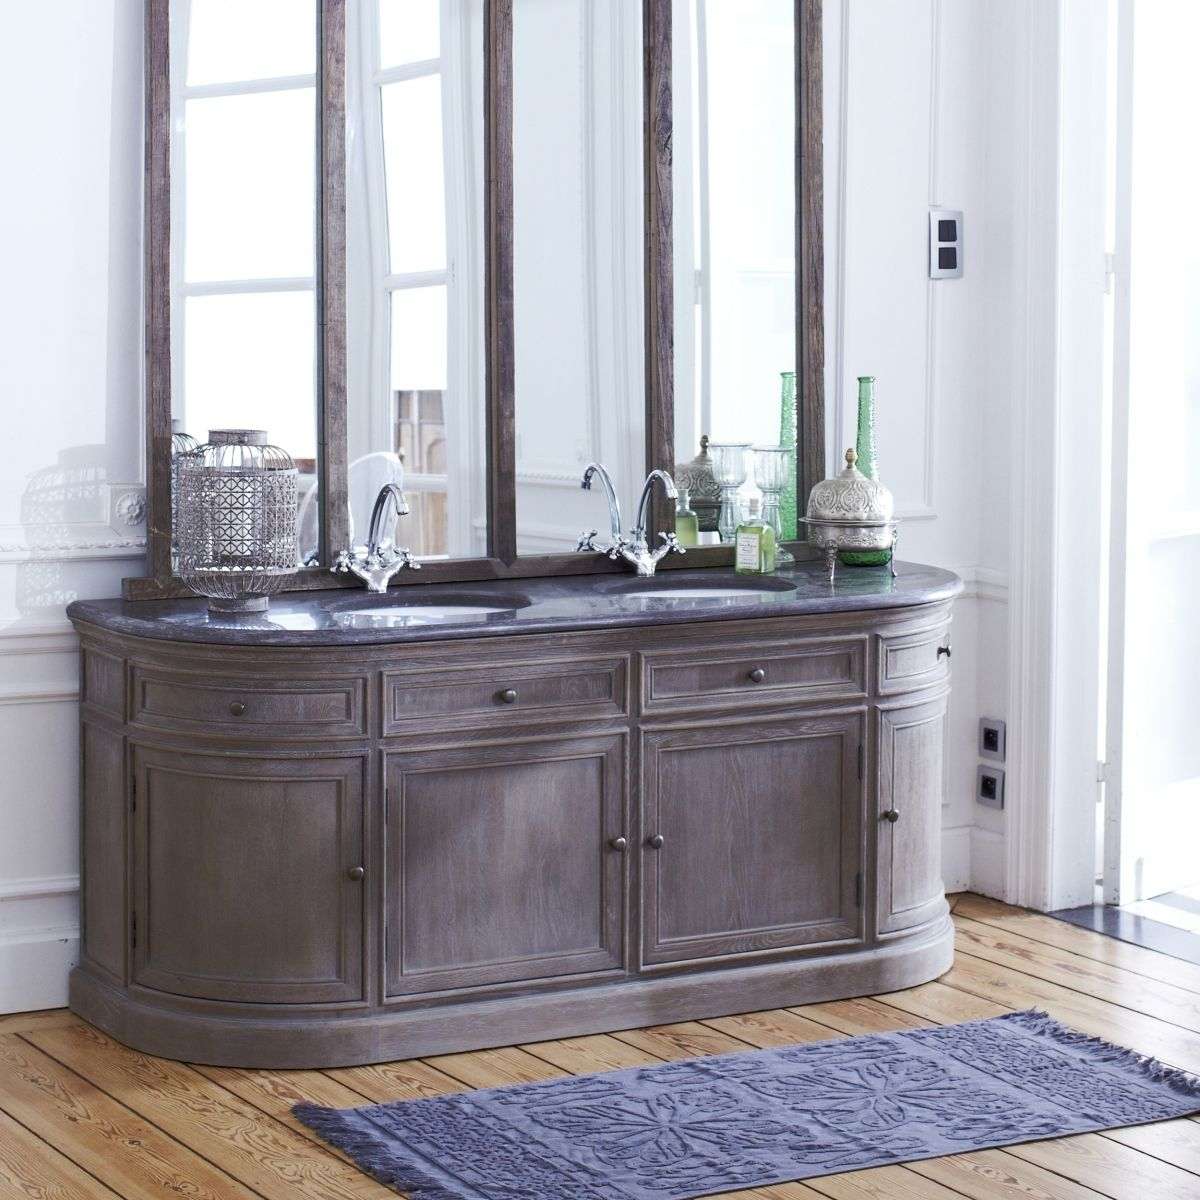 Meuble Sdb Double Vasque Louise Oak And Stone Vanity Cabinet 180 White Rooms Meuble